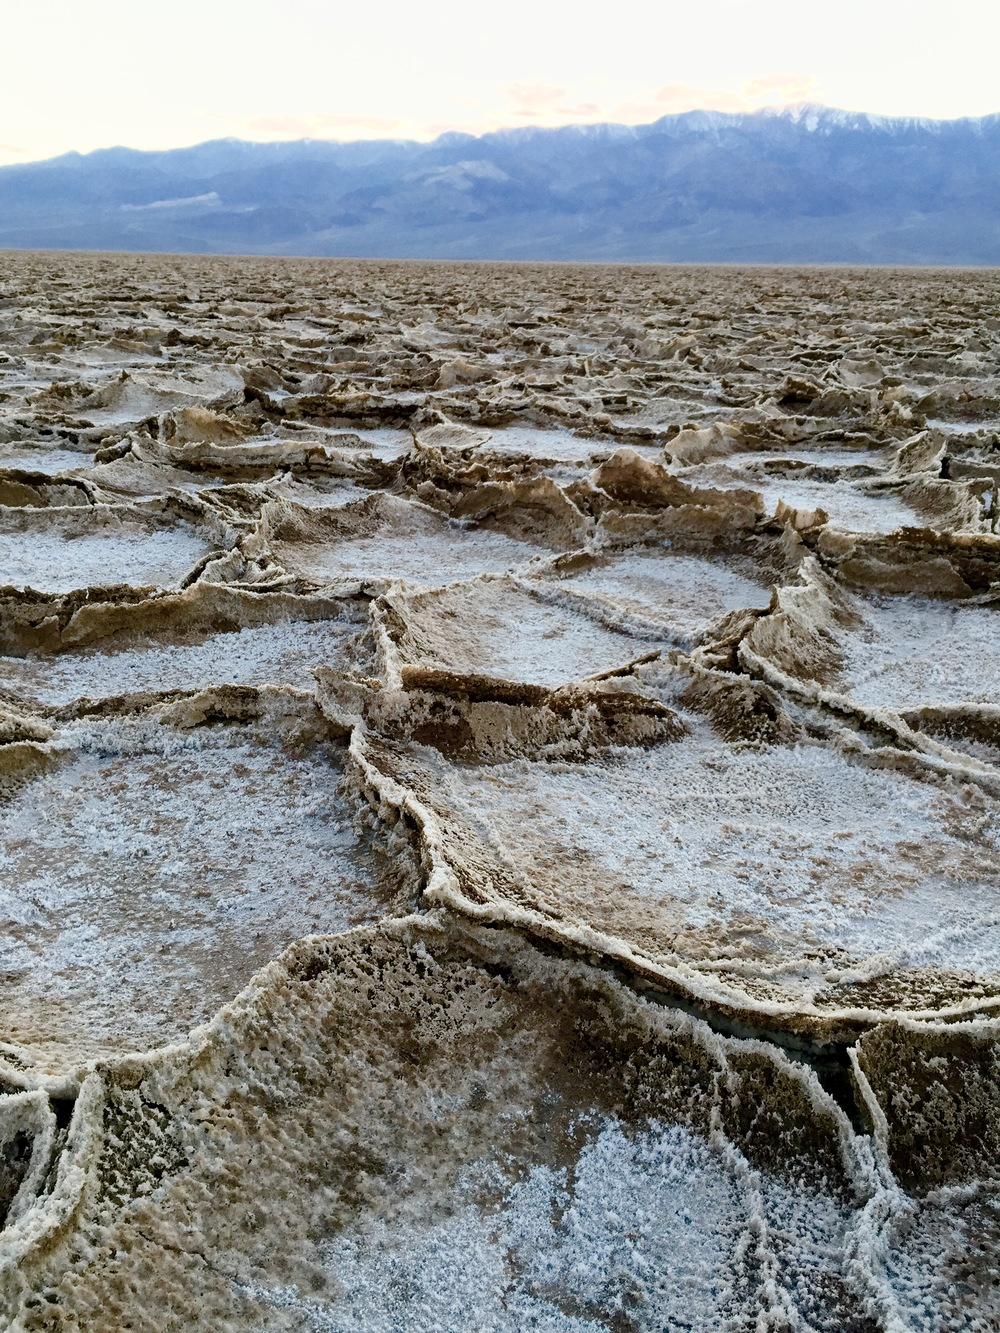 Another close-up of the Badwater Salt Flats in Death Valley.